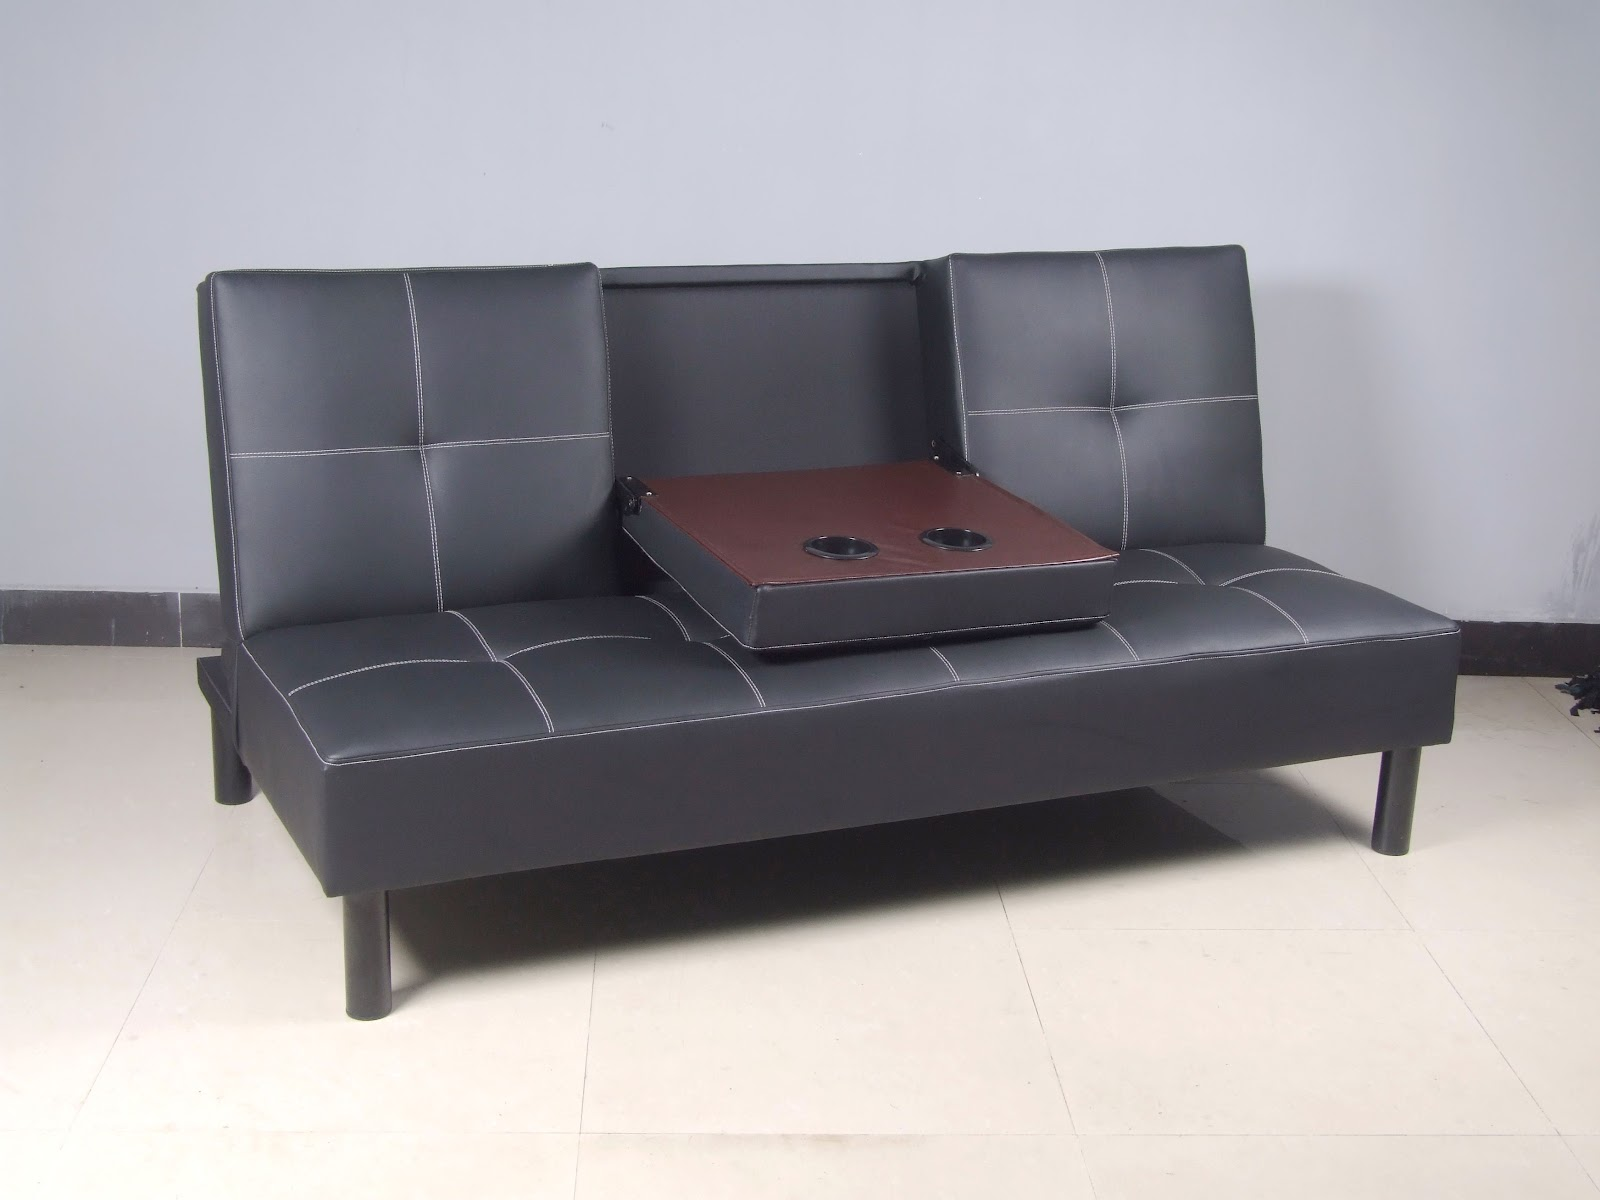 Furniture & Rug Moheda Sofa Bed Single Sleeper Chair